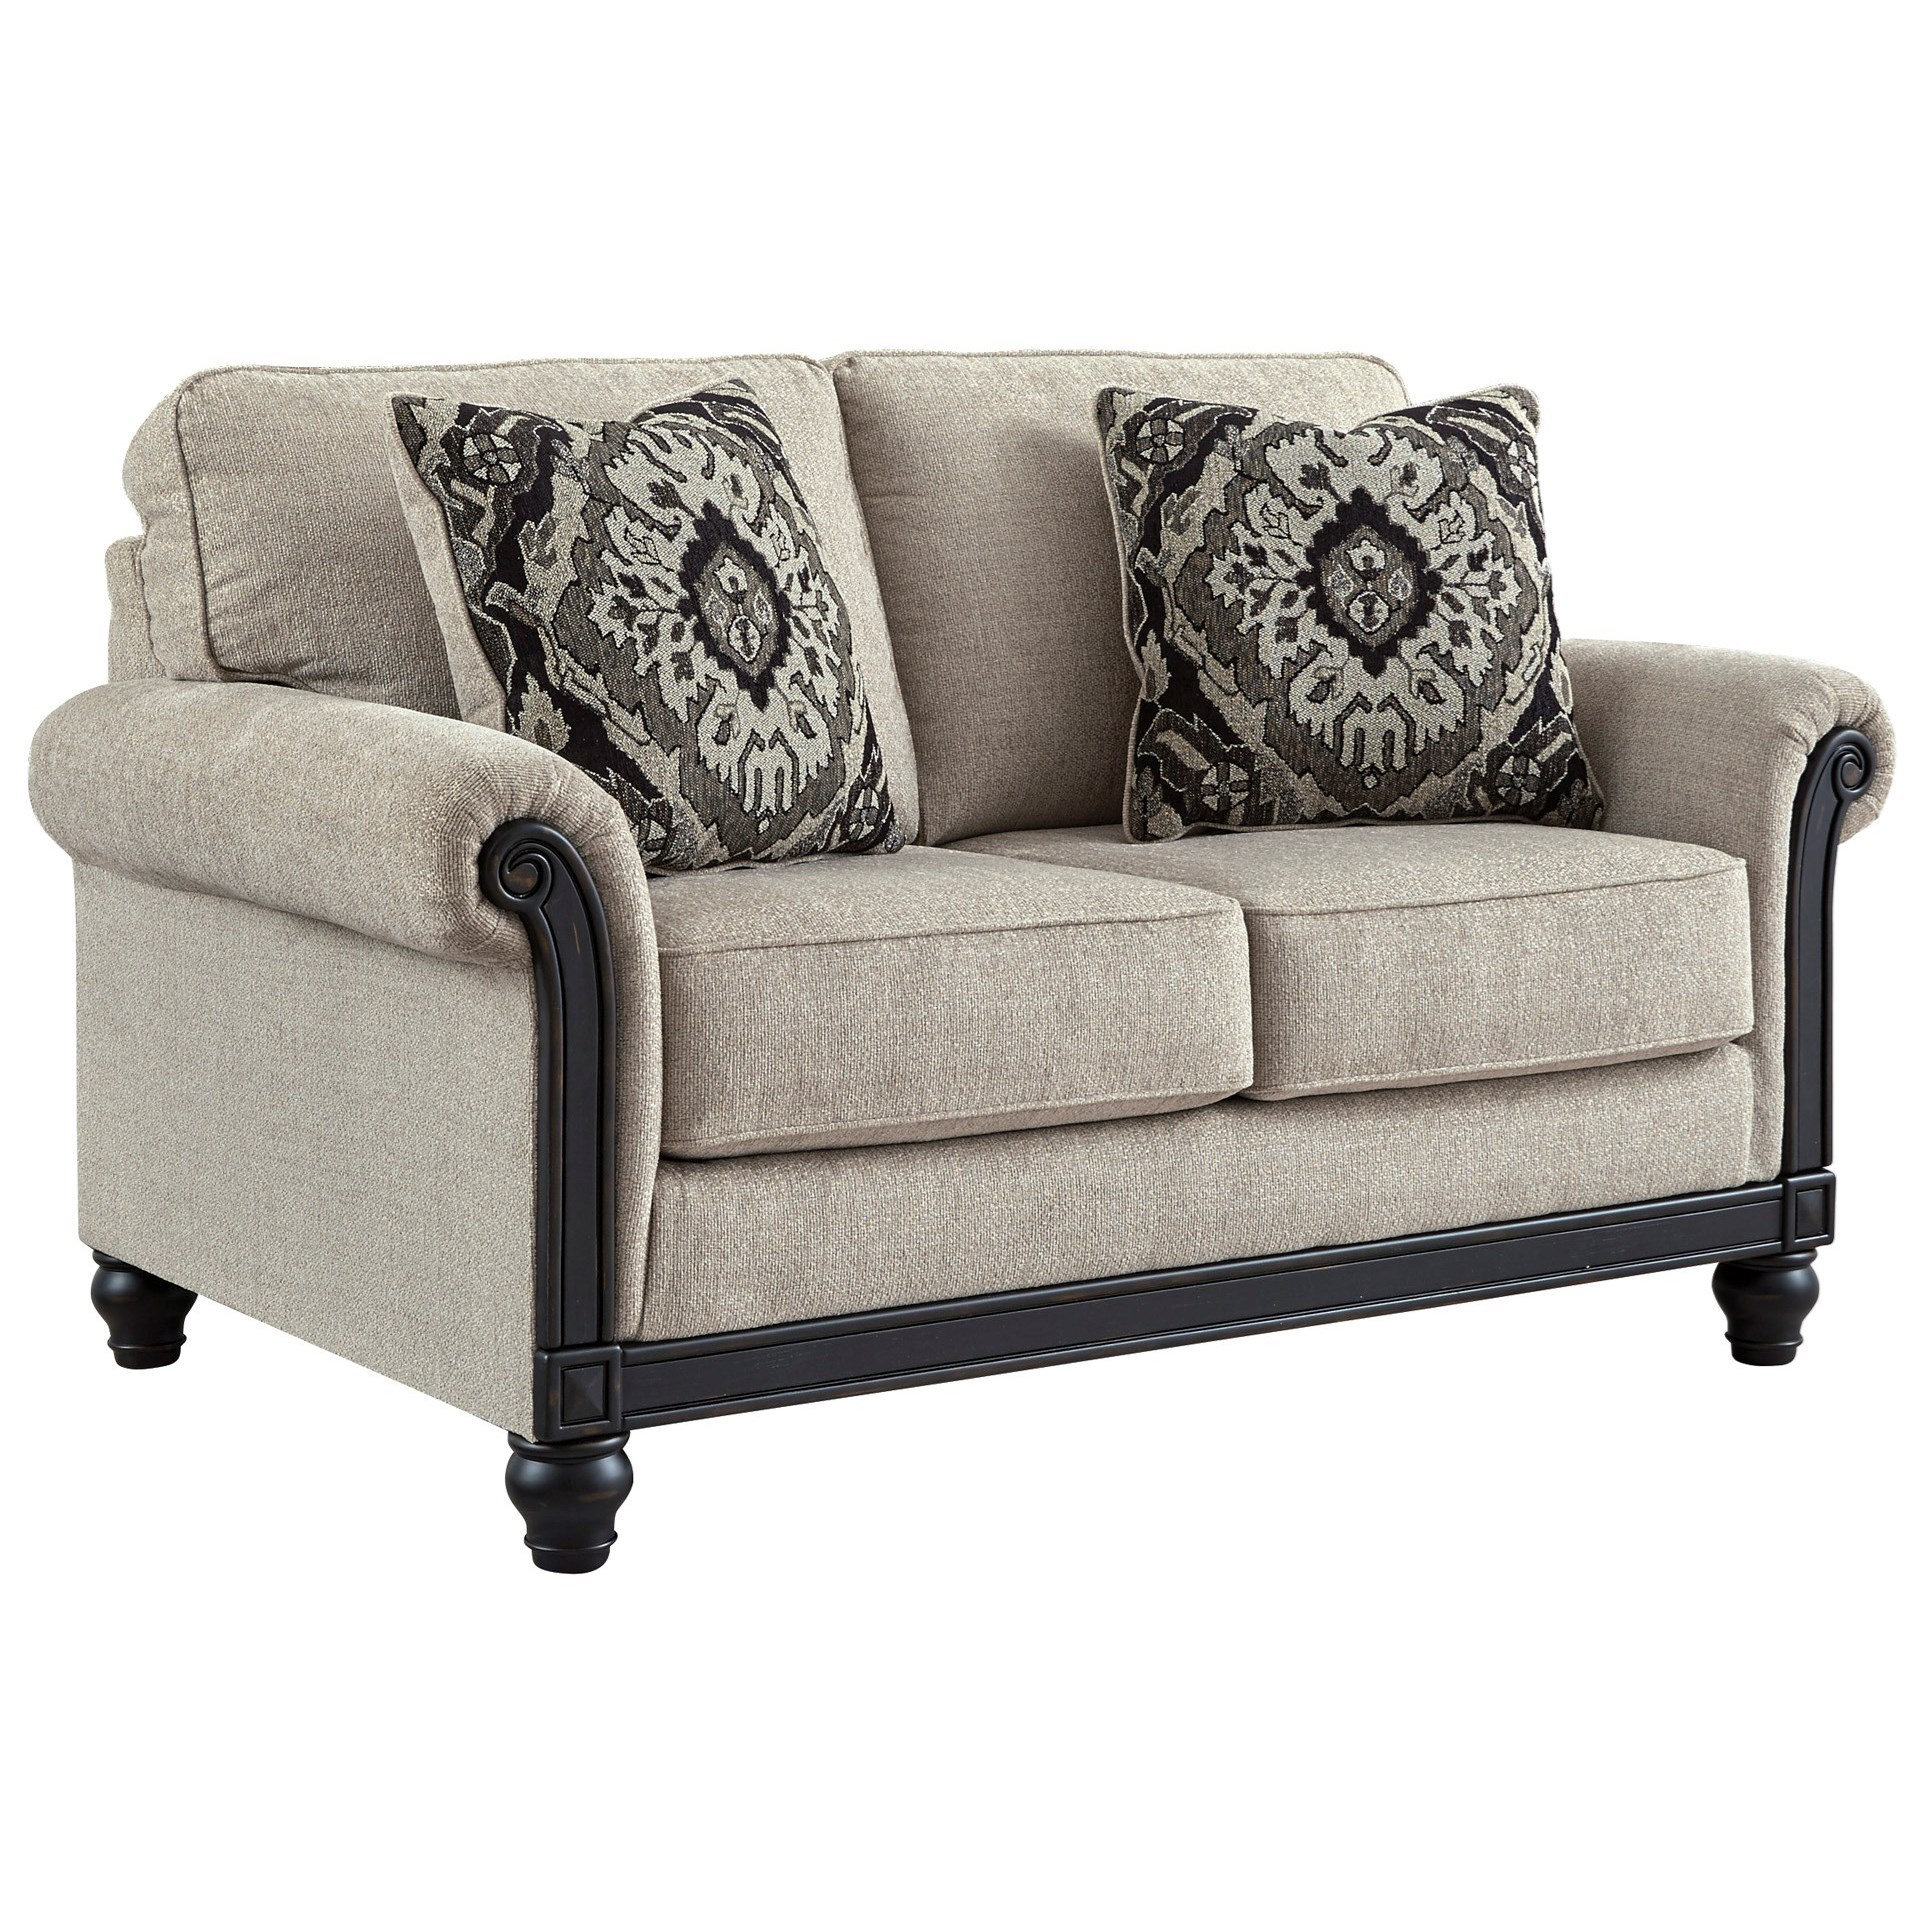 Brenna Loveseat by Signature at Walker's Furniture